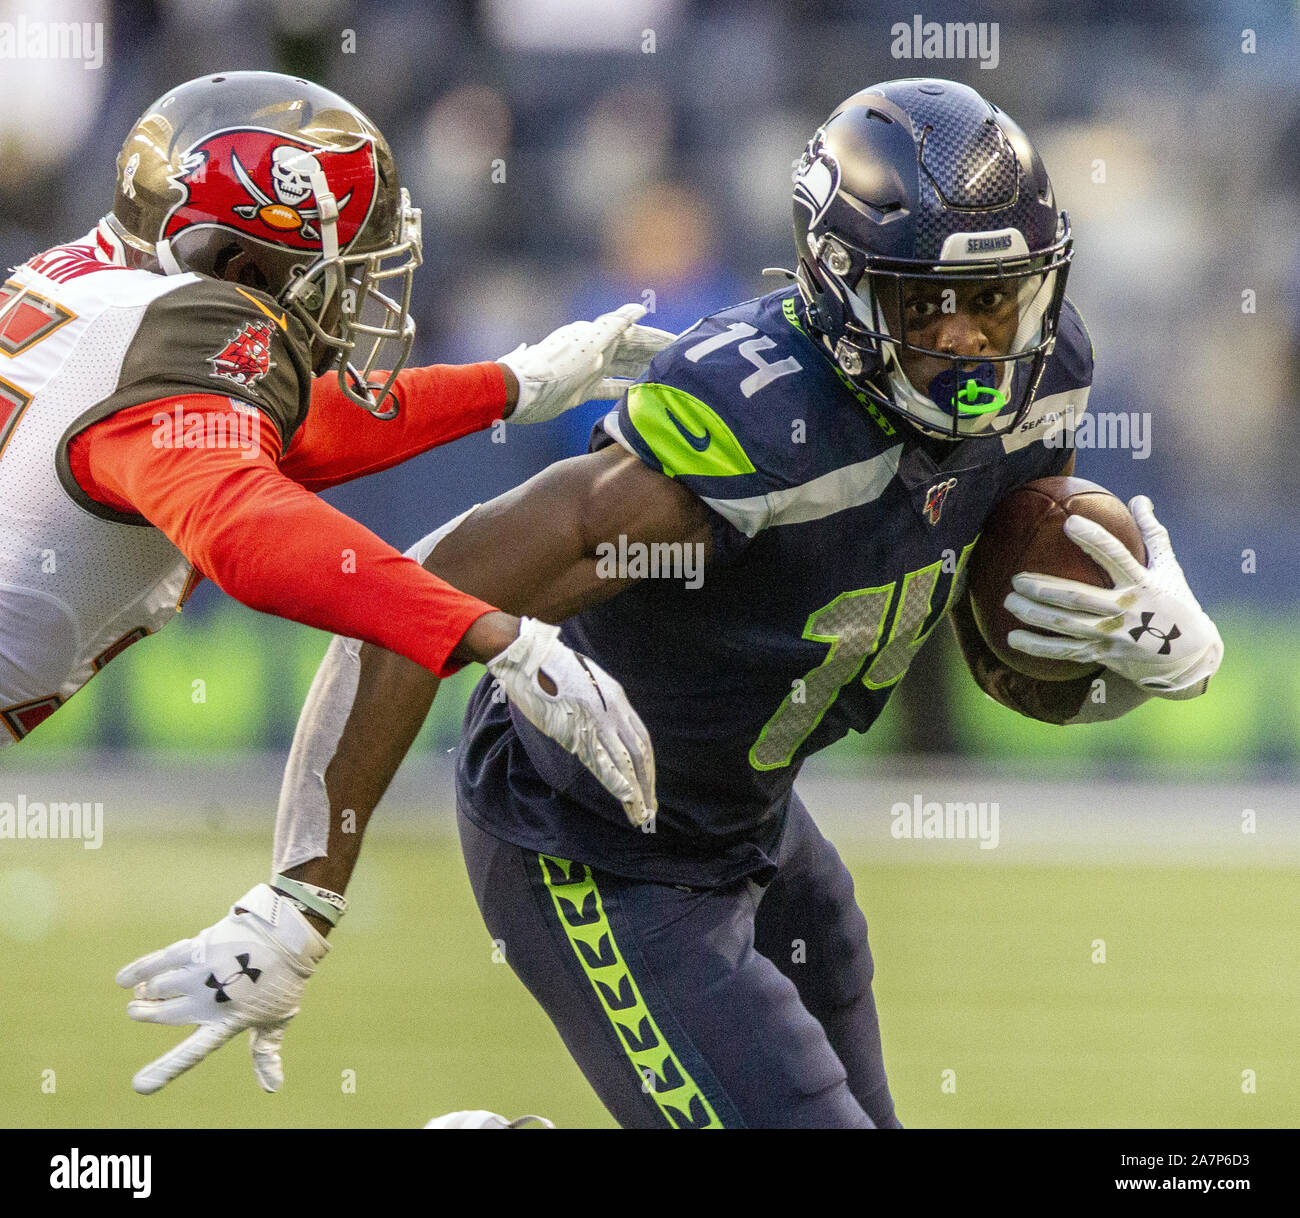 Seattle, United States. 03rd Nov, 2019. Seattle Seahawks wide receiver D.K. Metcalf (14) runs for a 14-yard gain against Tampa Bay Buccaneers defensive back Jamel Dean (35) during the fourth quarter at CenturyLink Field on Sunday, November 3, 2019 in Seattle, Washington. The Seahawks beat the Buccaneers 40-34 in overtime. Jim Bryant Photo/UPI Credit: UPI/Alamy Live News Stock Photo